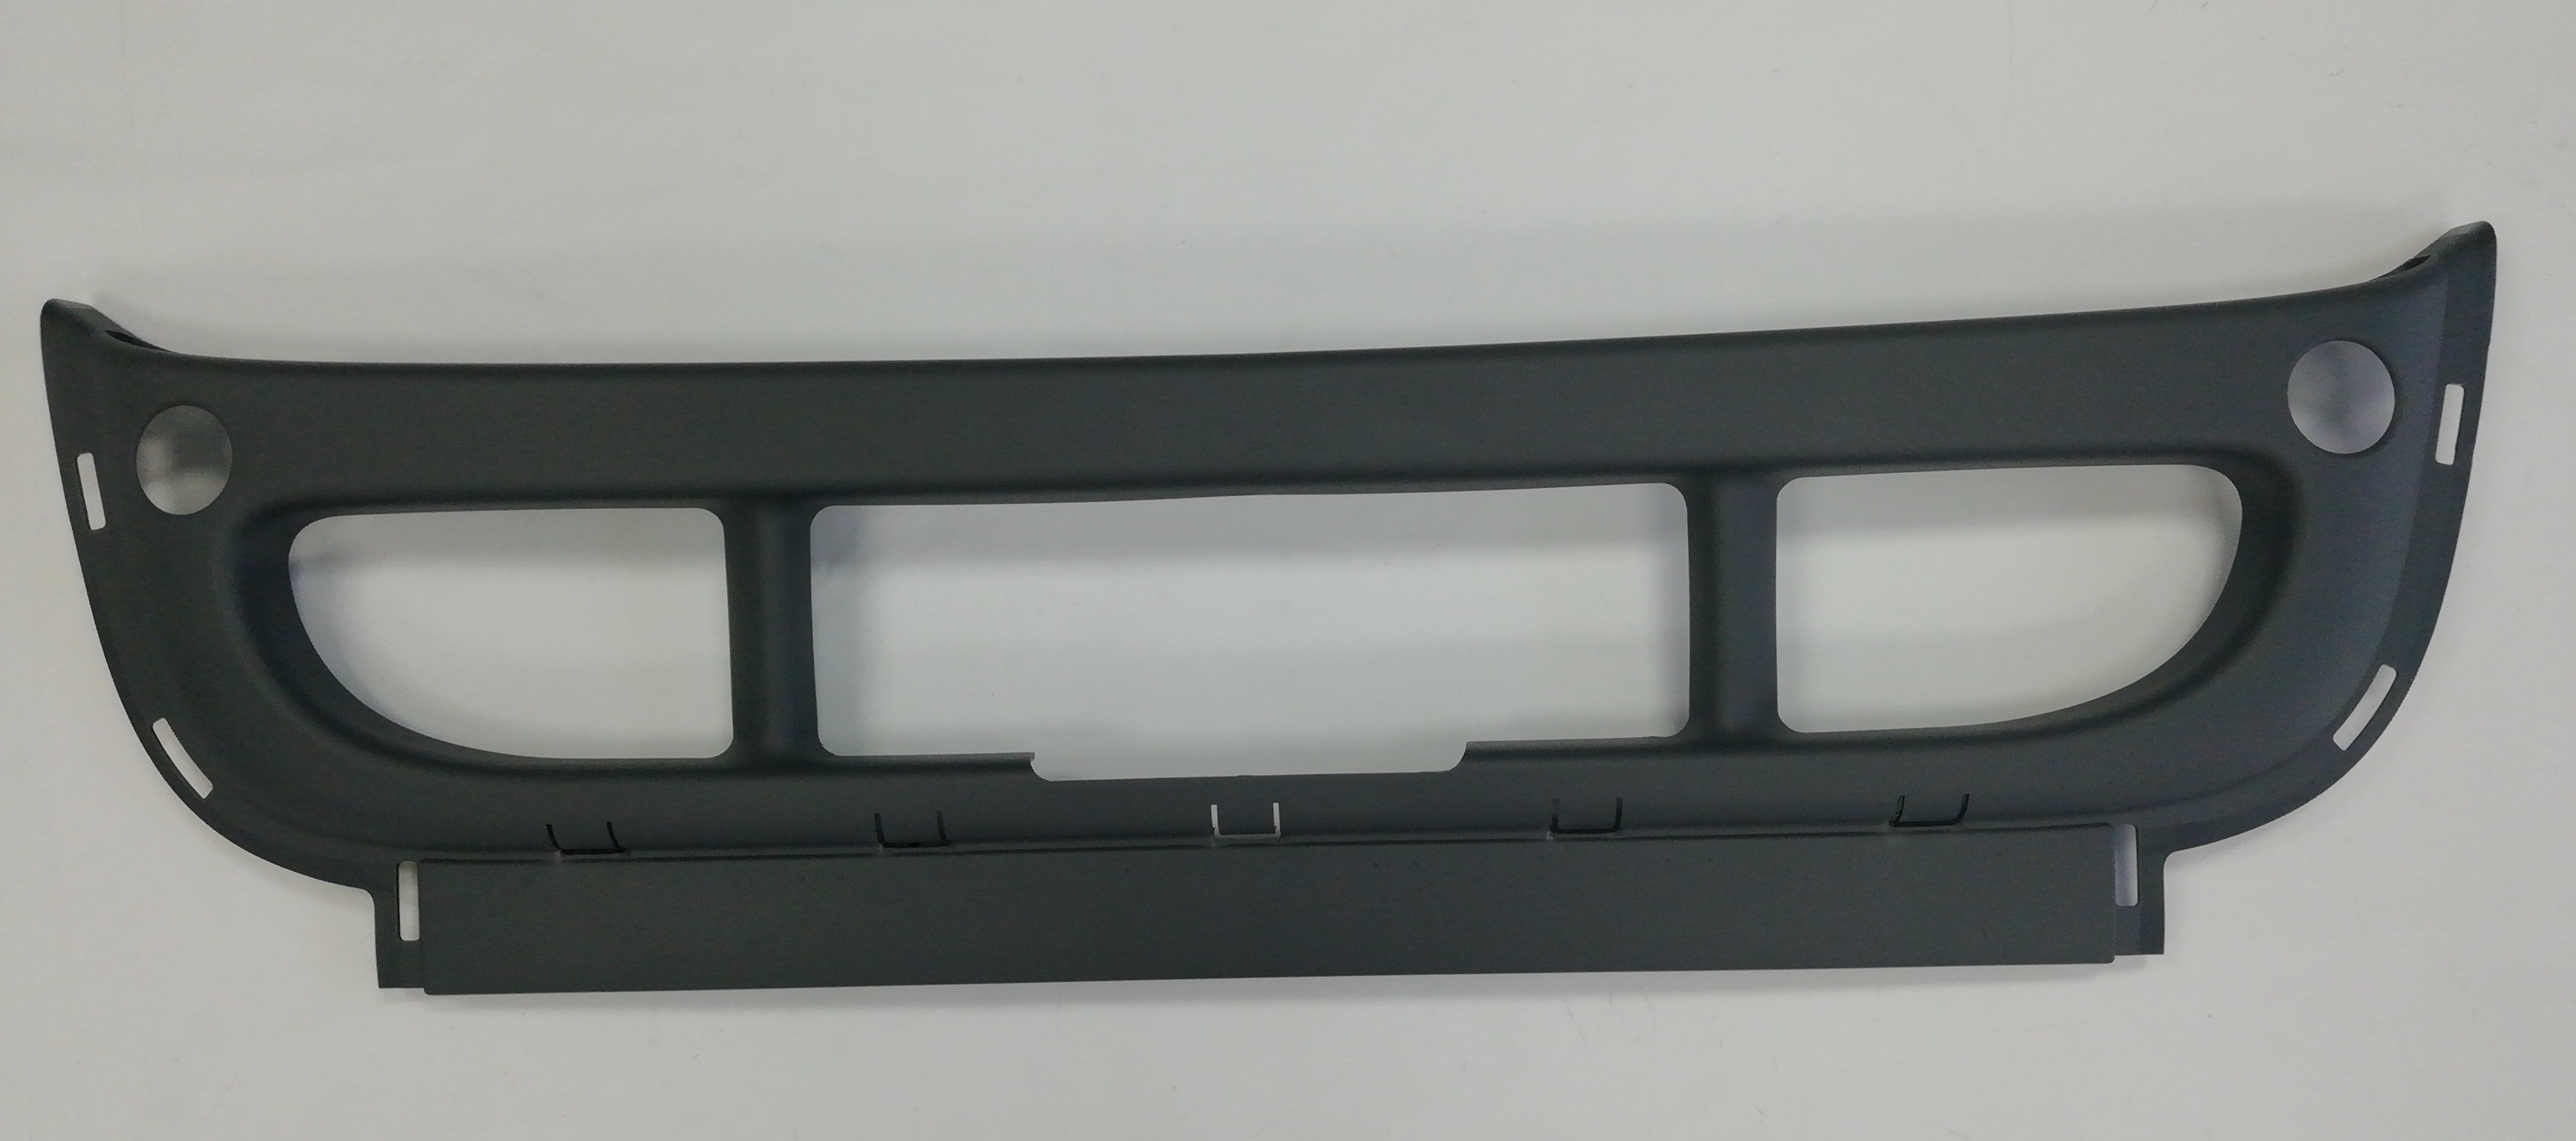 13358-N Freightliner Cascadia Center Bumper W/Holes For Trim Replaces Oem   21-28446-000 - BC Heavy Truck Solutions